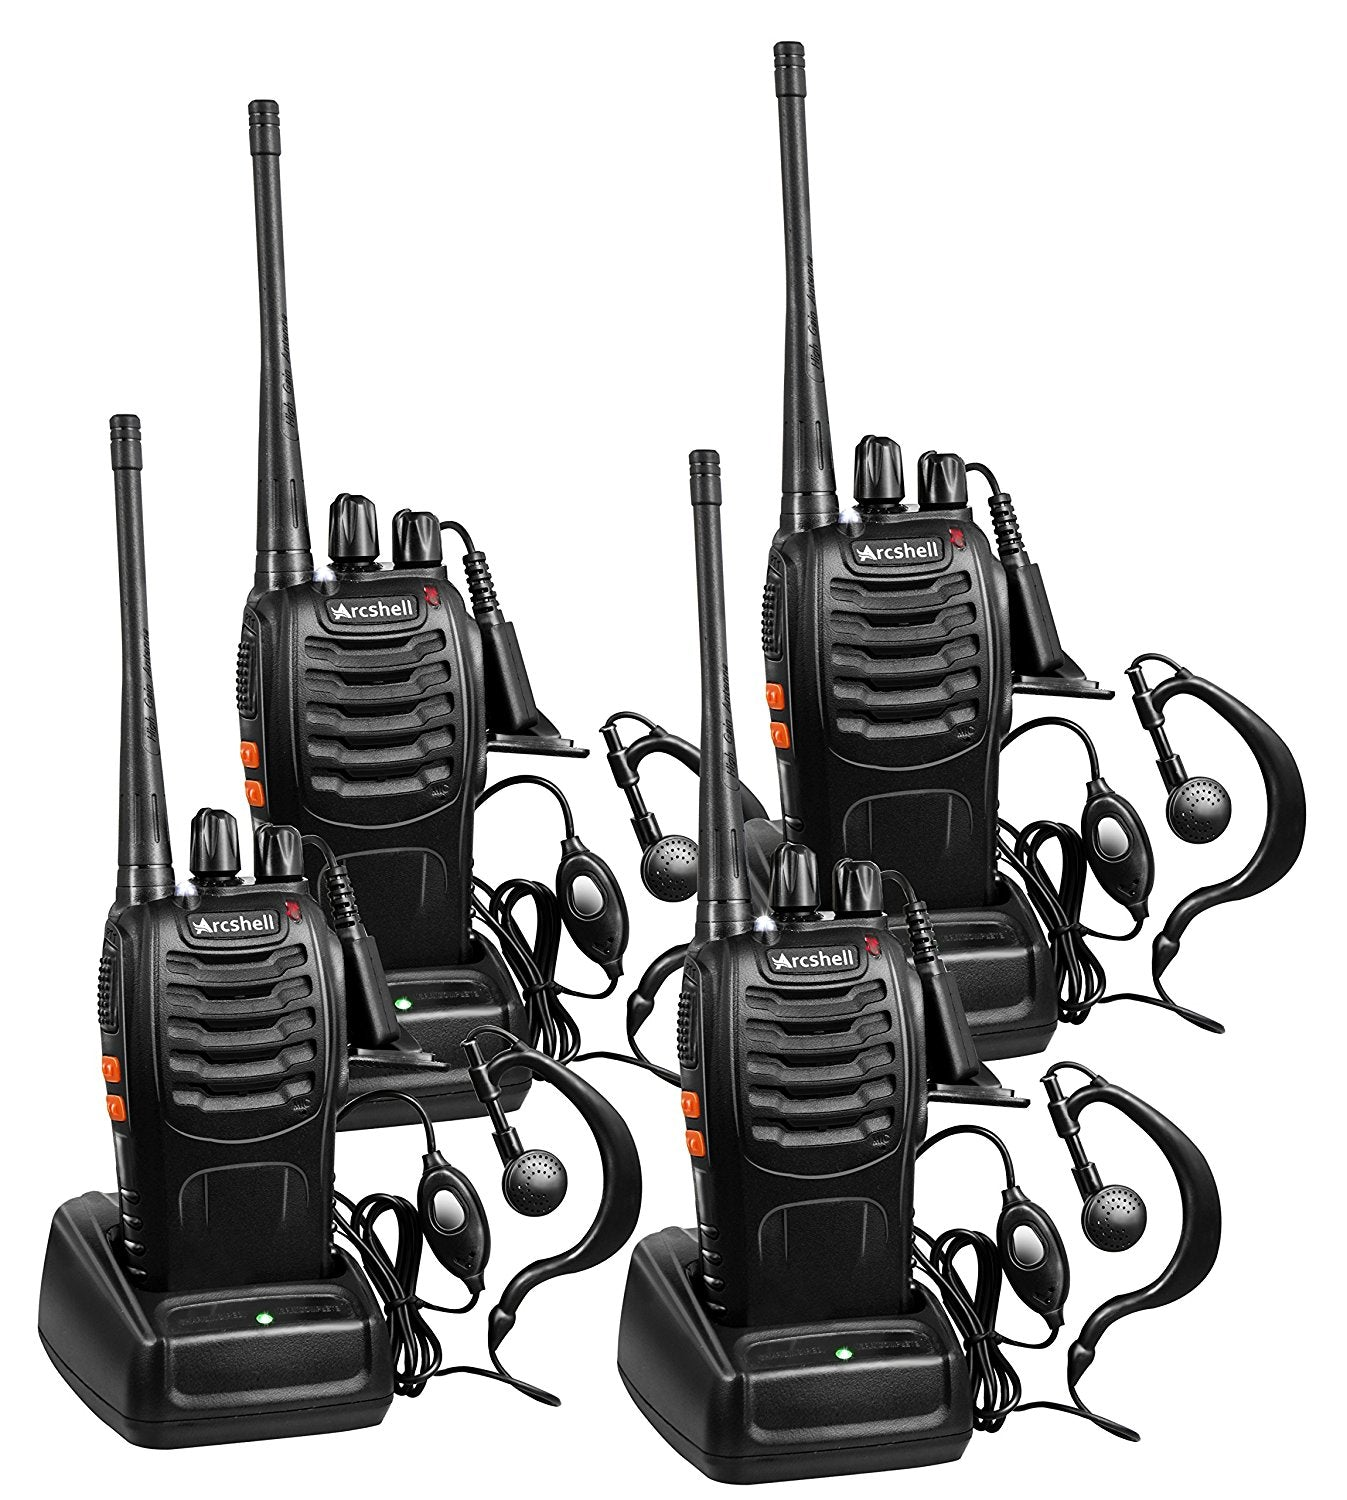 two way radios vazlo Dual Radio Holsters arcshell rechargeable long range two way radios with earpiece 4 pack uhf 400 470mhz walkie talkies li ion battery and charger included